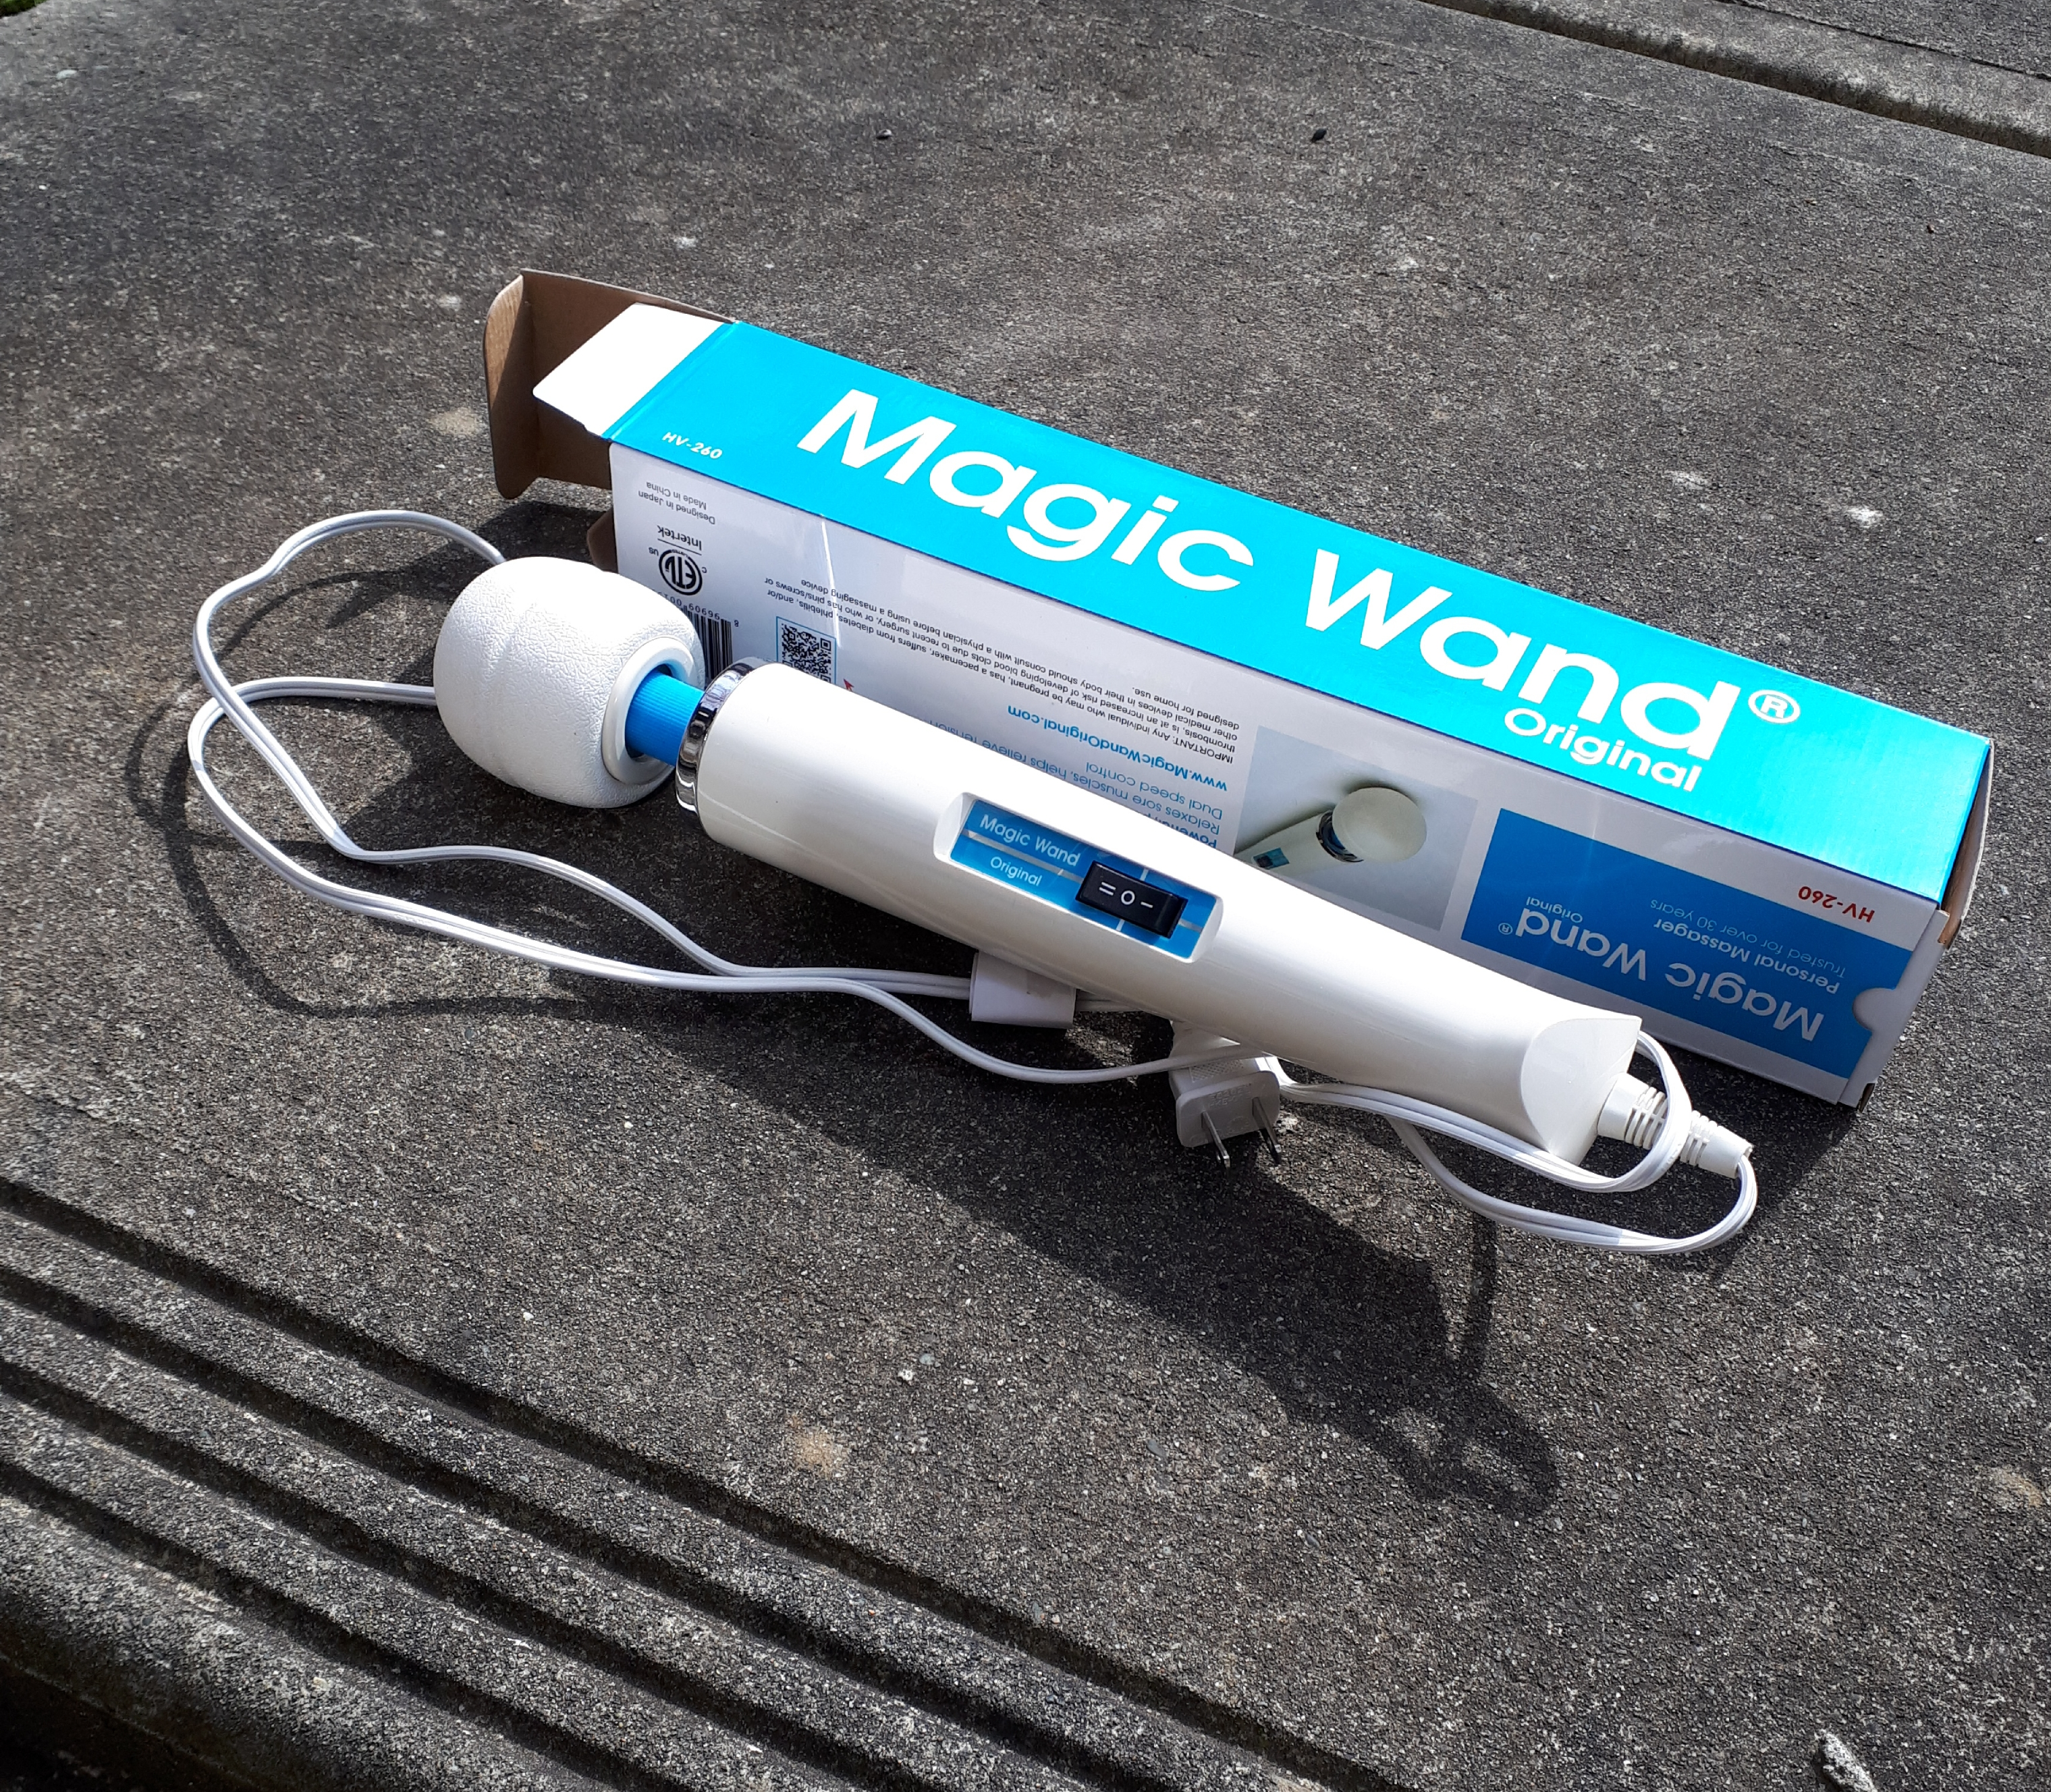 Yes I photographed my new magic wand on a friend's patio